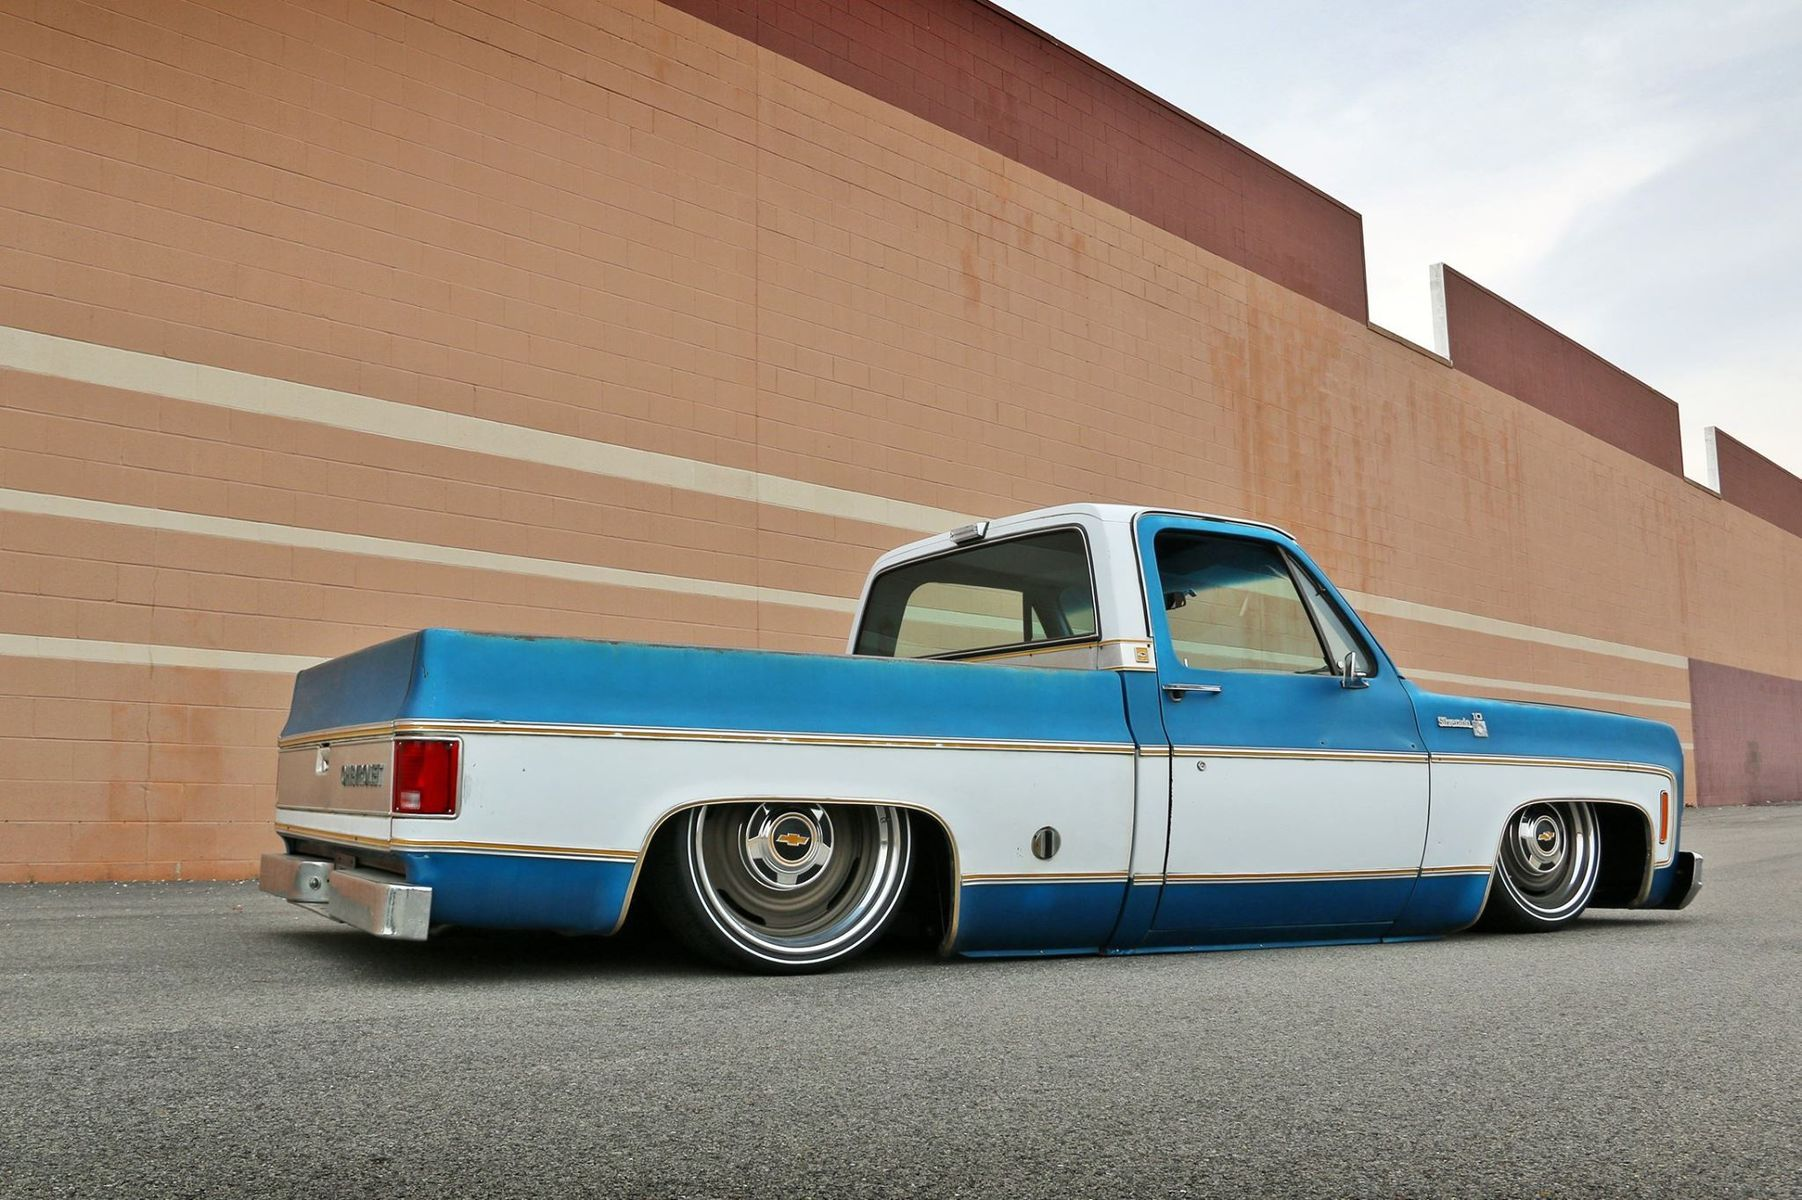 1976 Chevrolet C-10 | Roadster Shop's 1976 Chevy C10 SPEC Squarebody on RS-Designed Forgeline Wheels